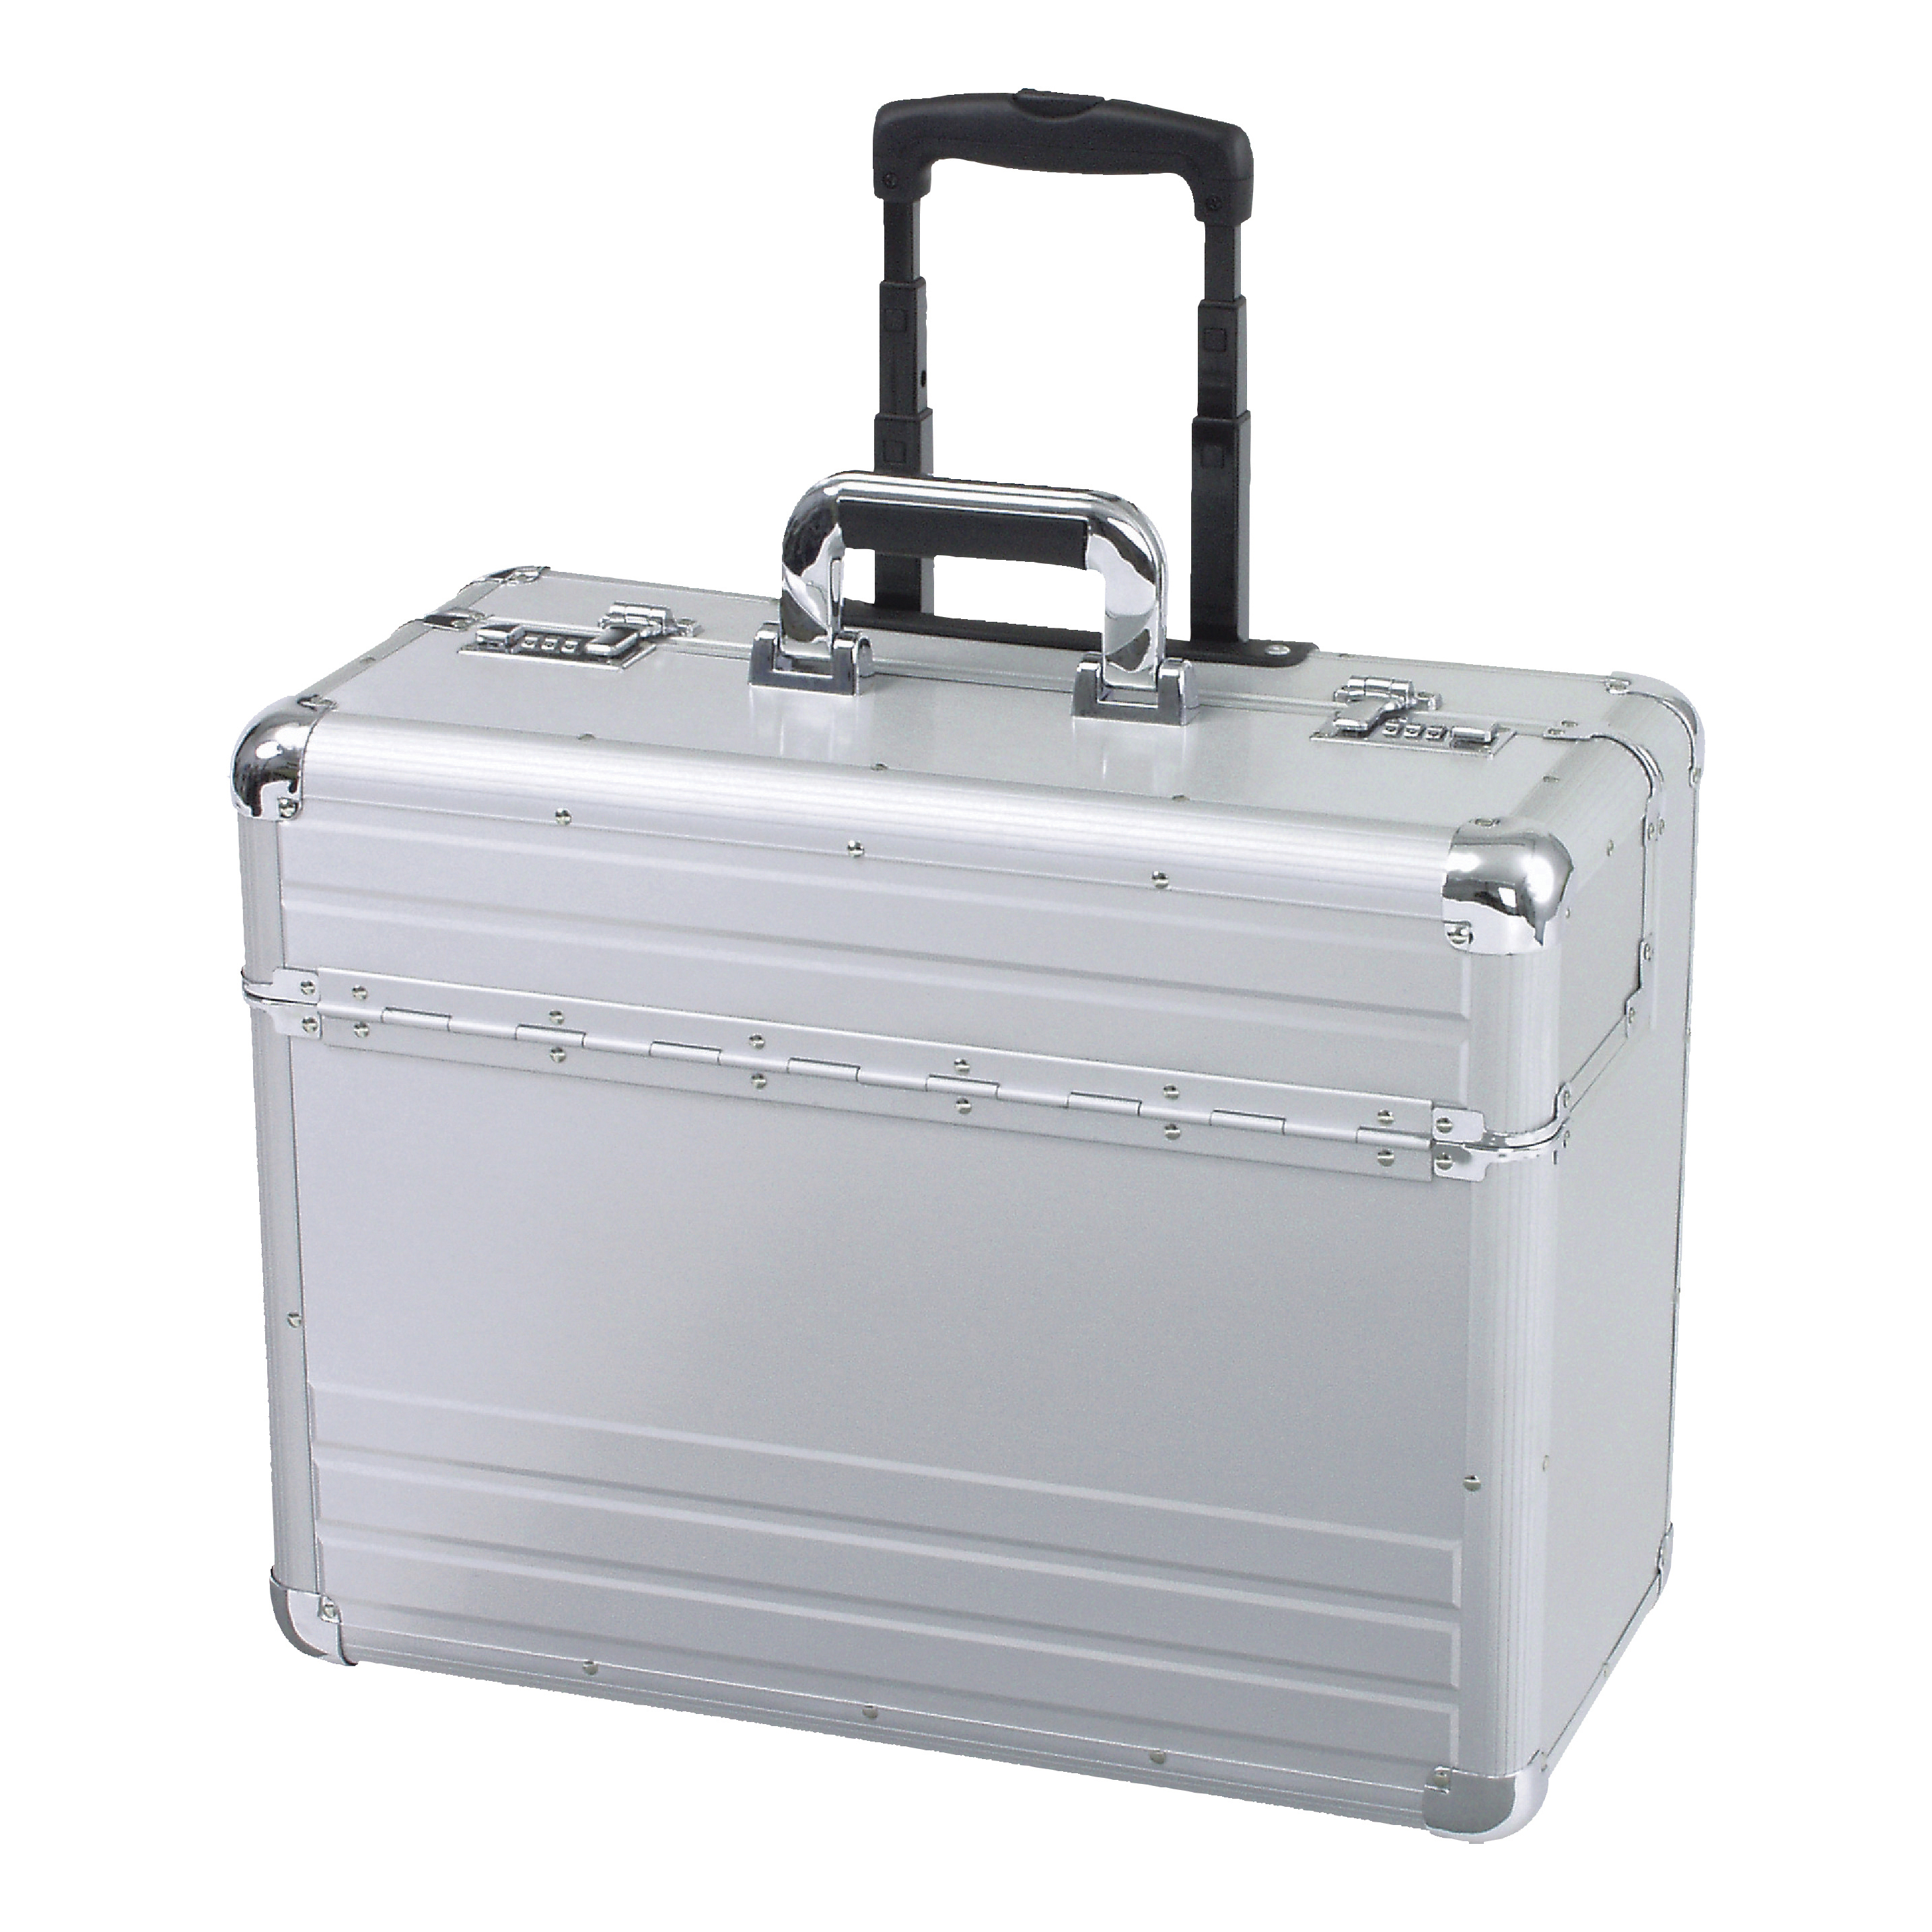 Briefcases & Luggage Alumaxx Omega Trolley Pilot Case 2 Combination Locks 5.3kg Silver Aluminium Ref 45122